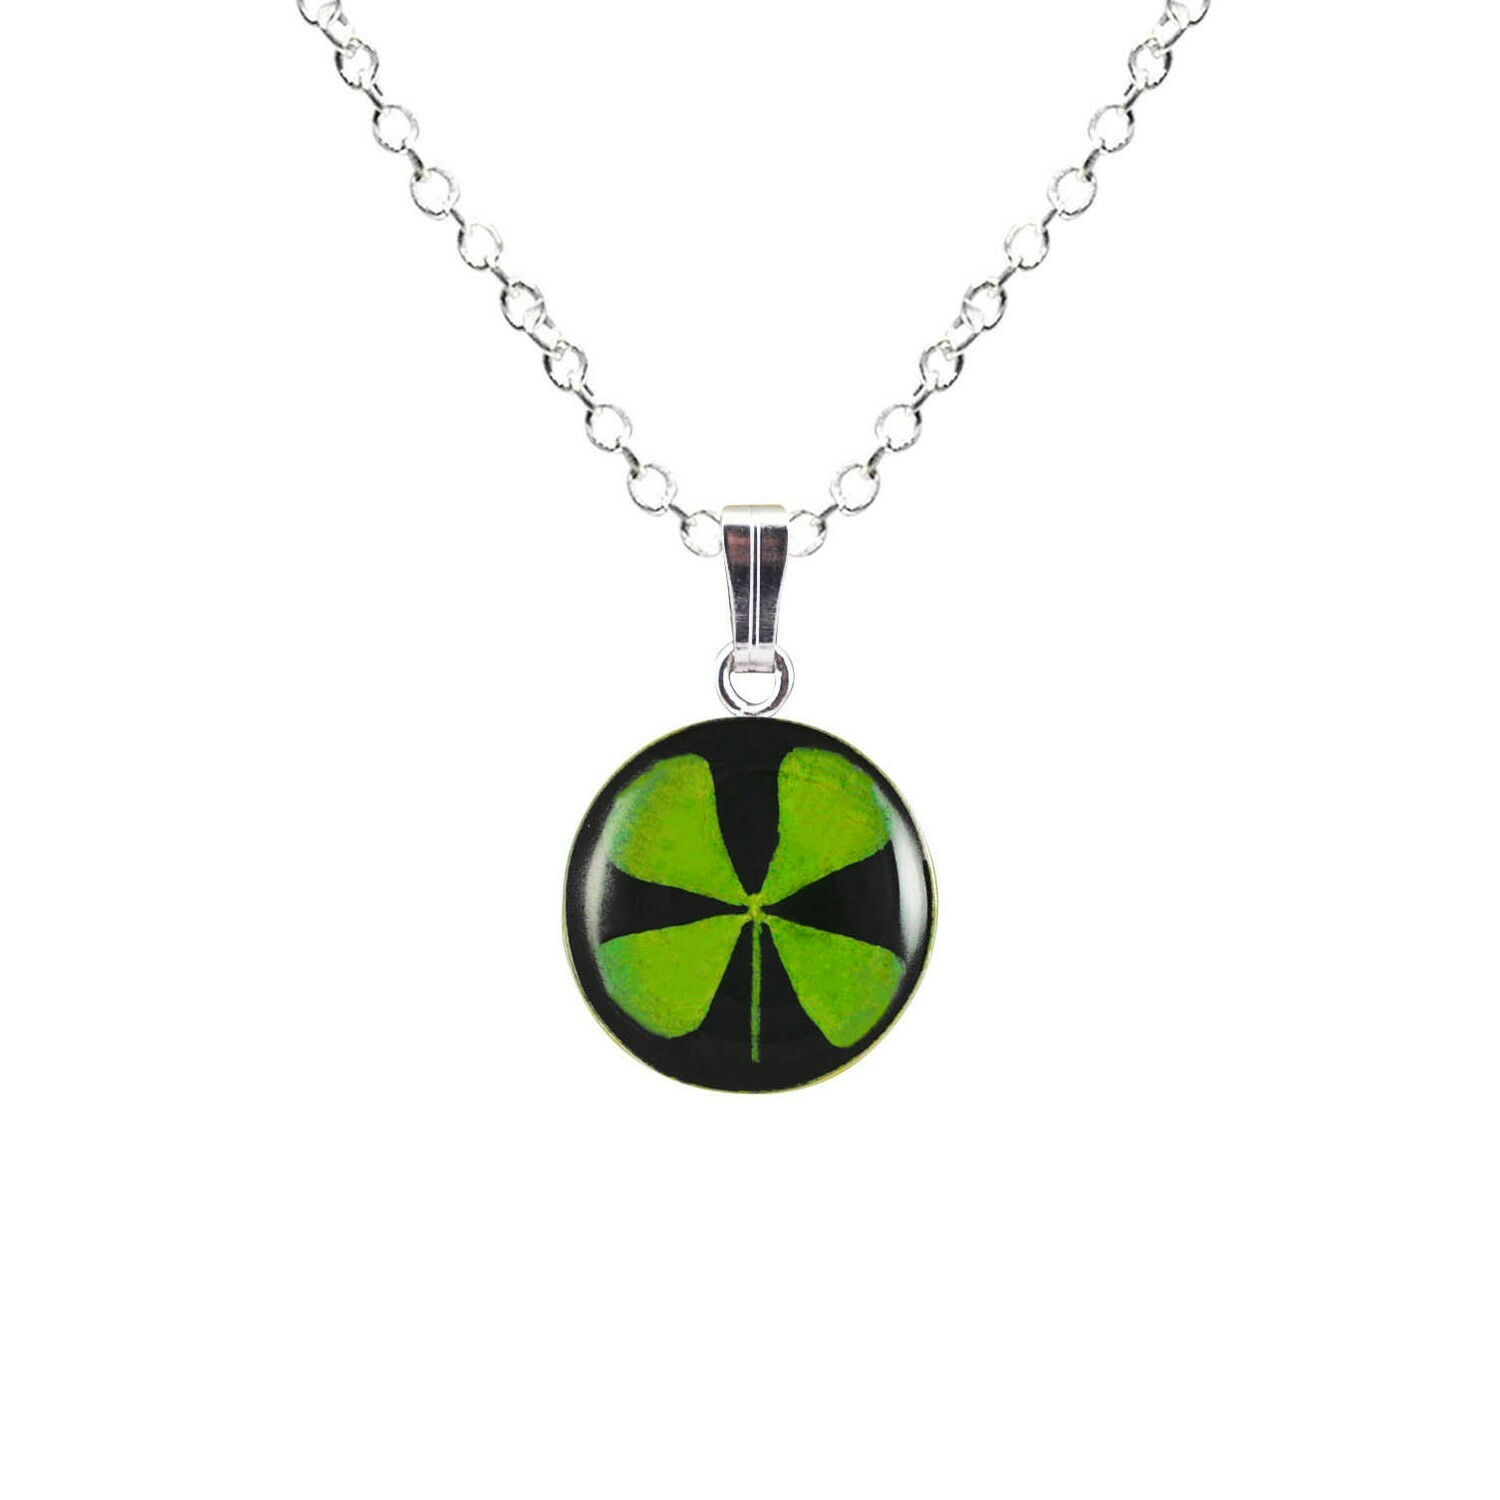 Clover Necklace, Small Circle, Black Background